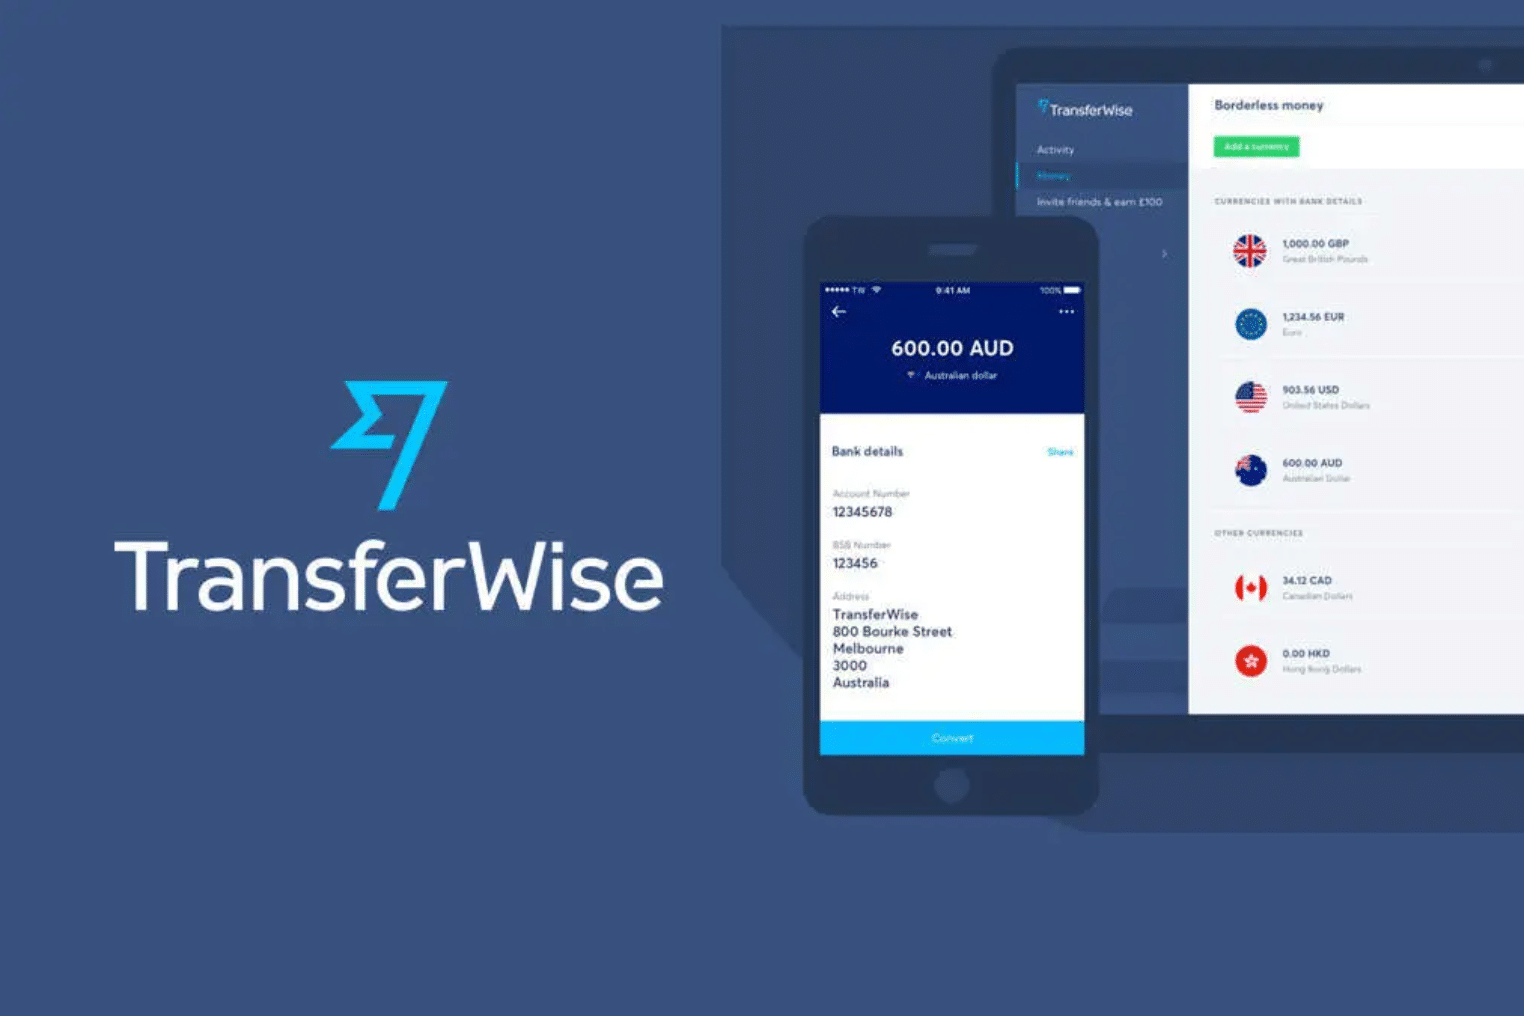 compte-bancaire-usa-transferwise-llc